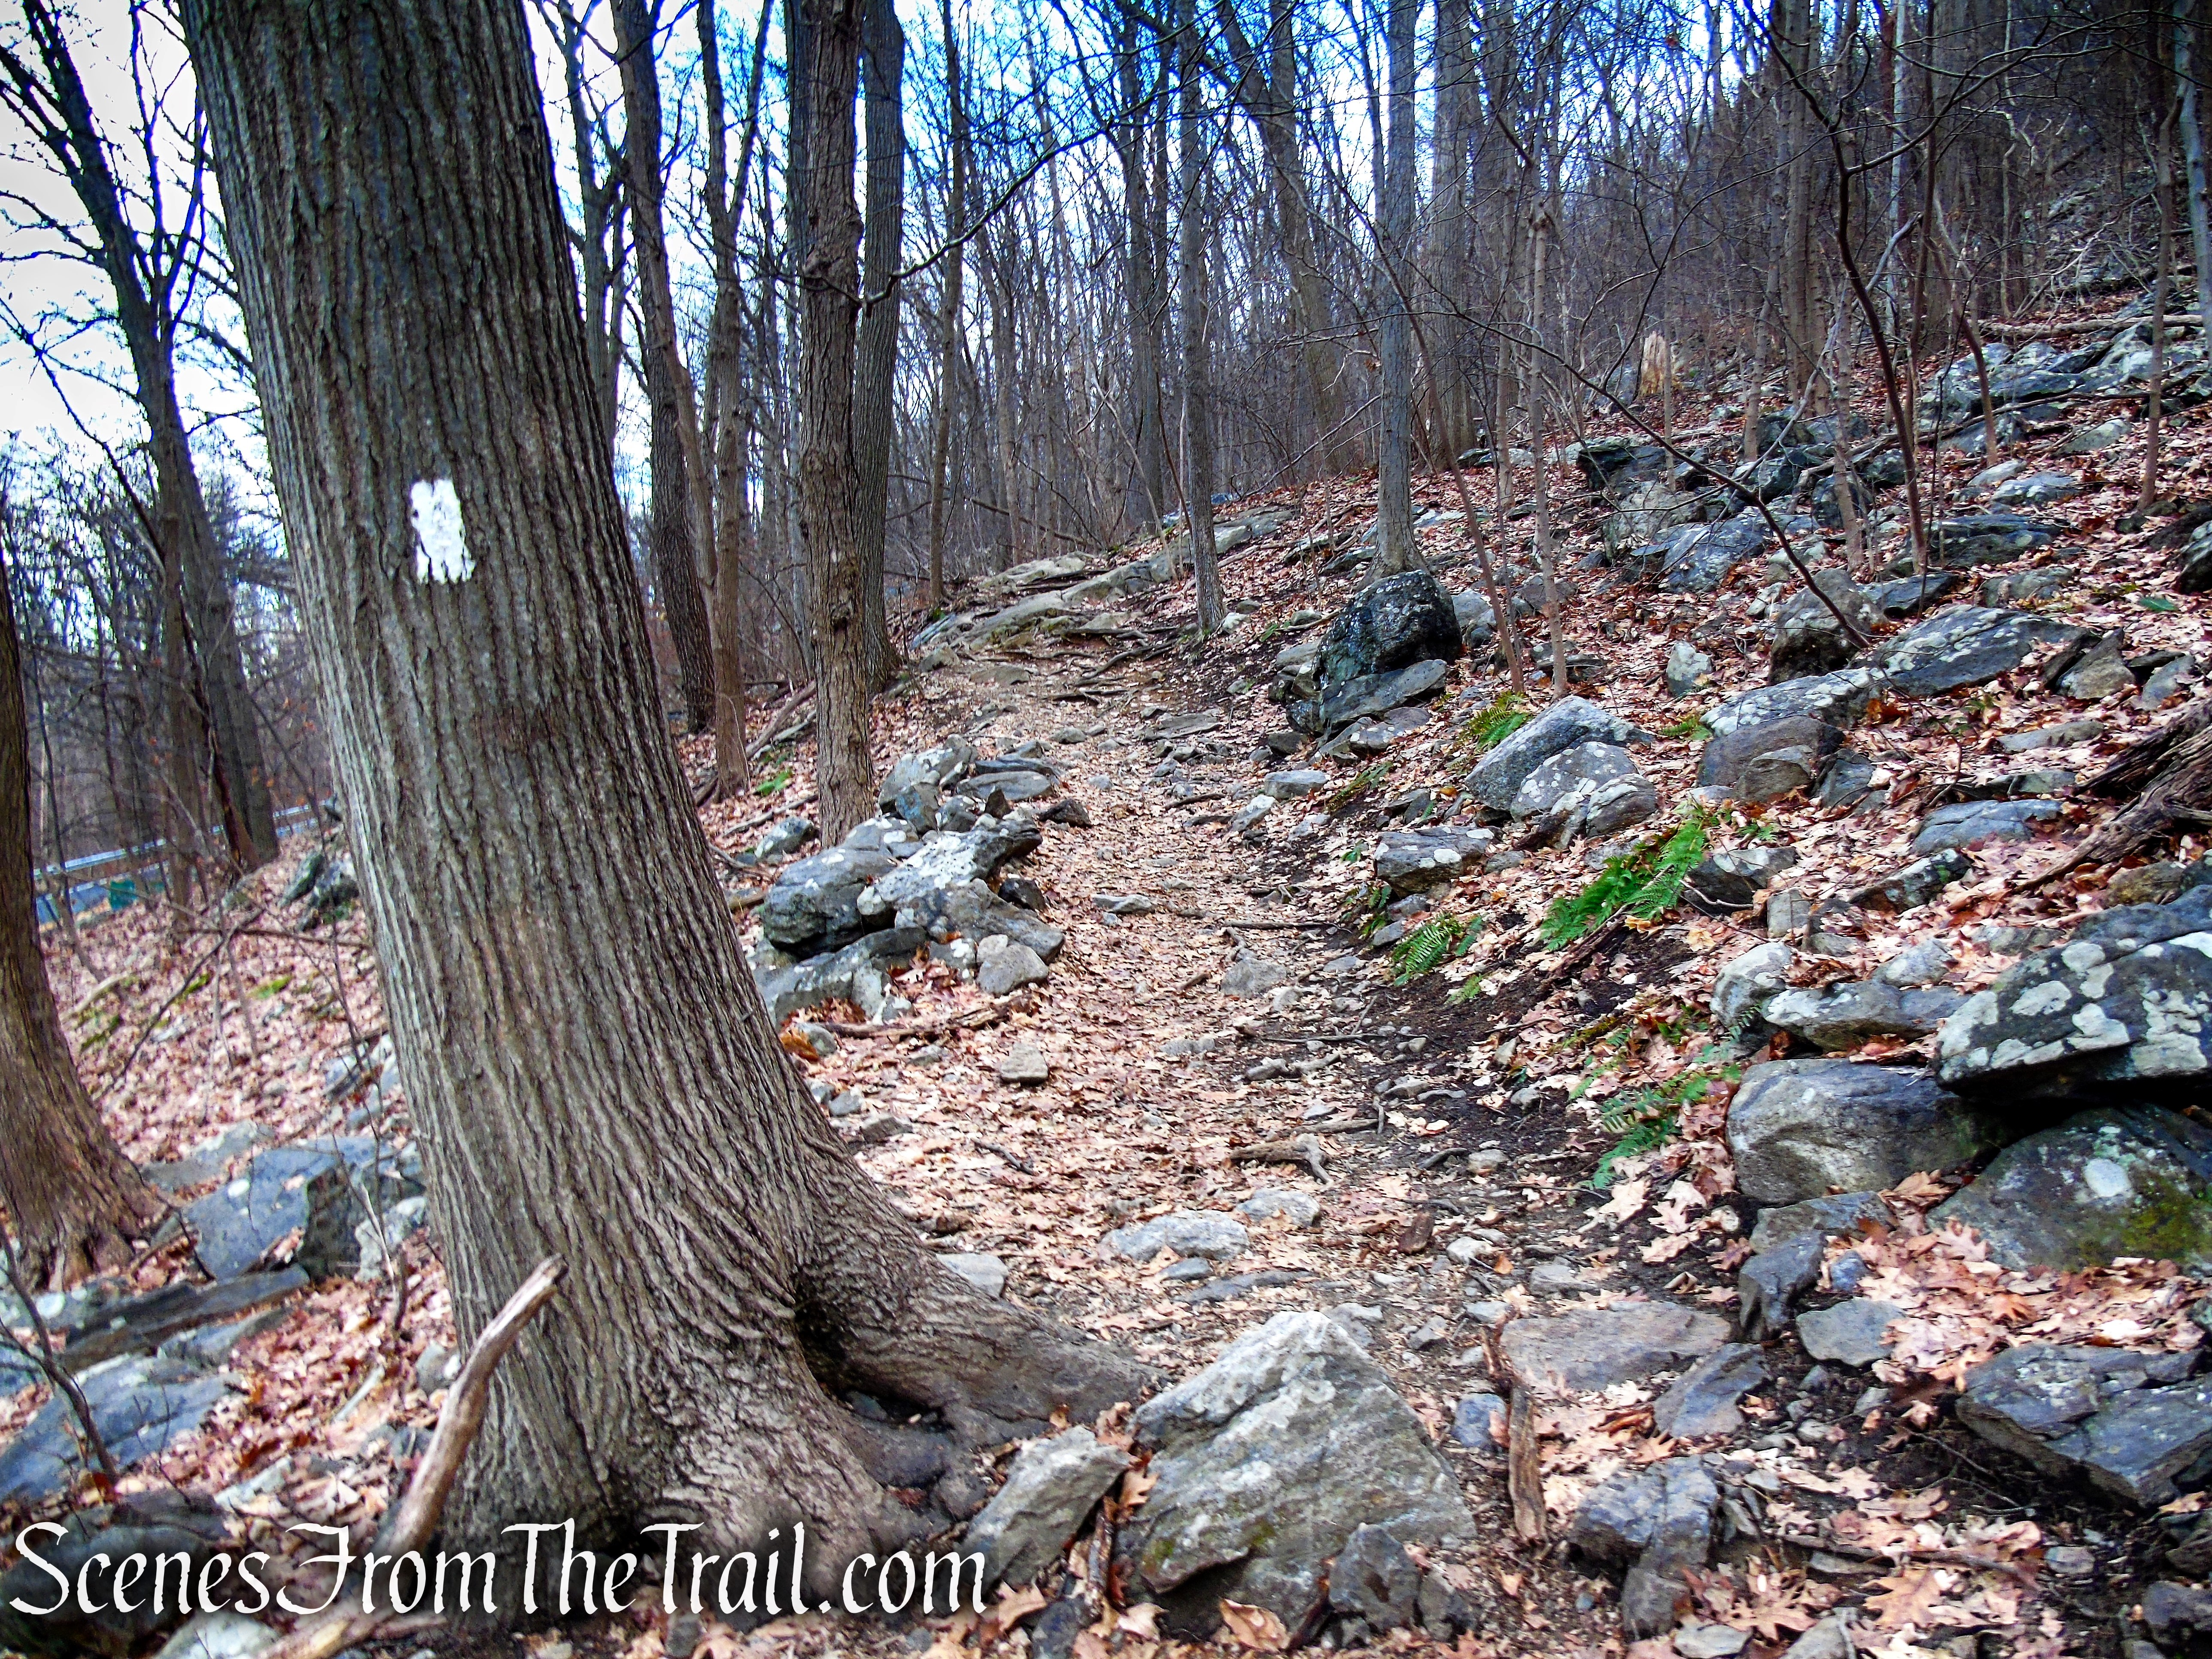 Appalachian Trail - Anthony's Nose